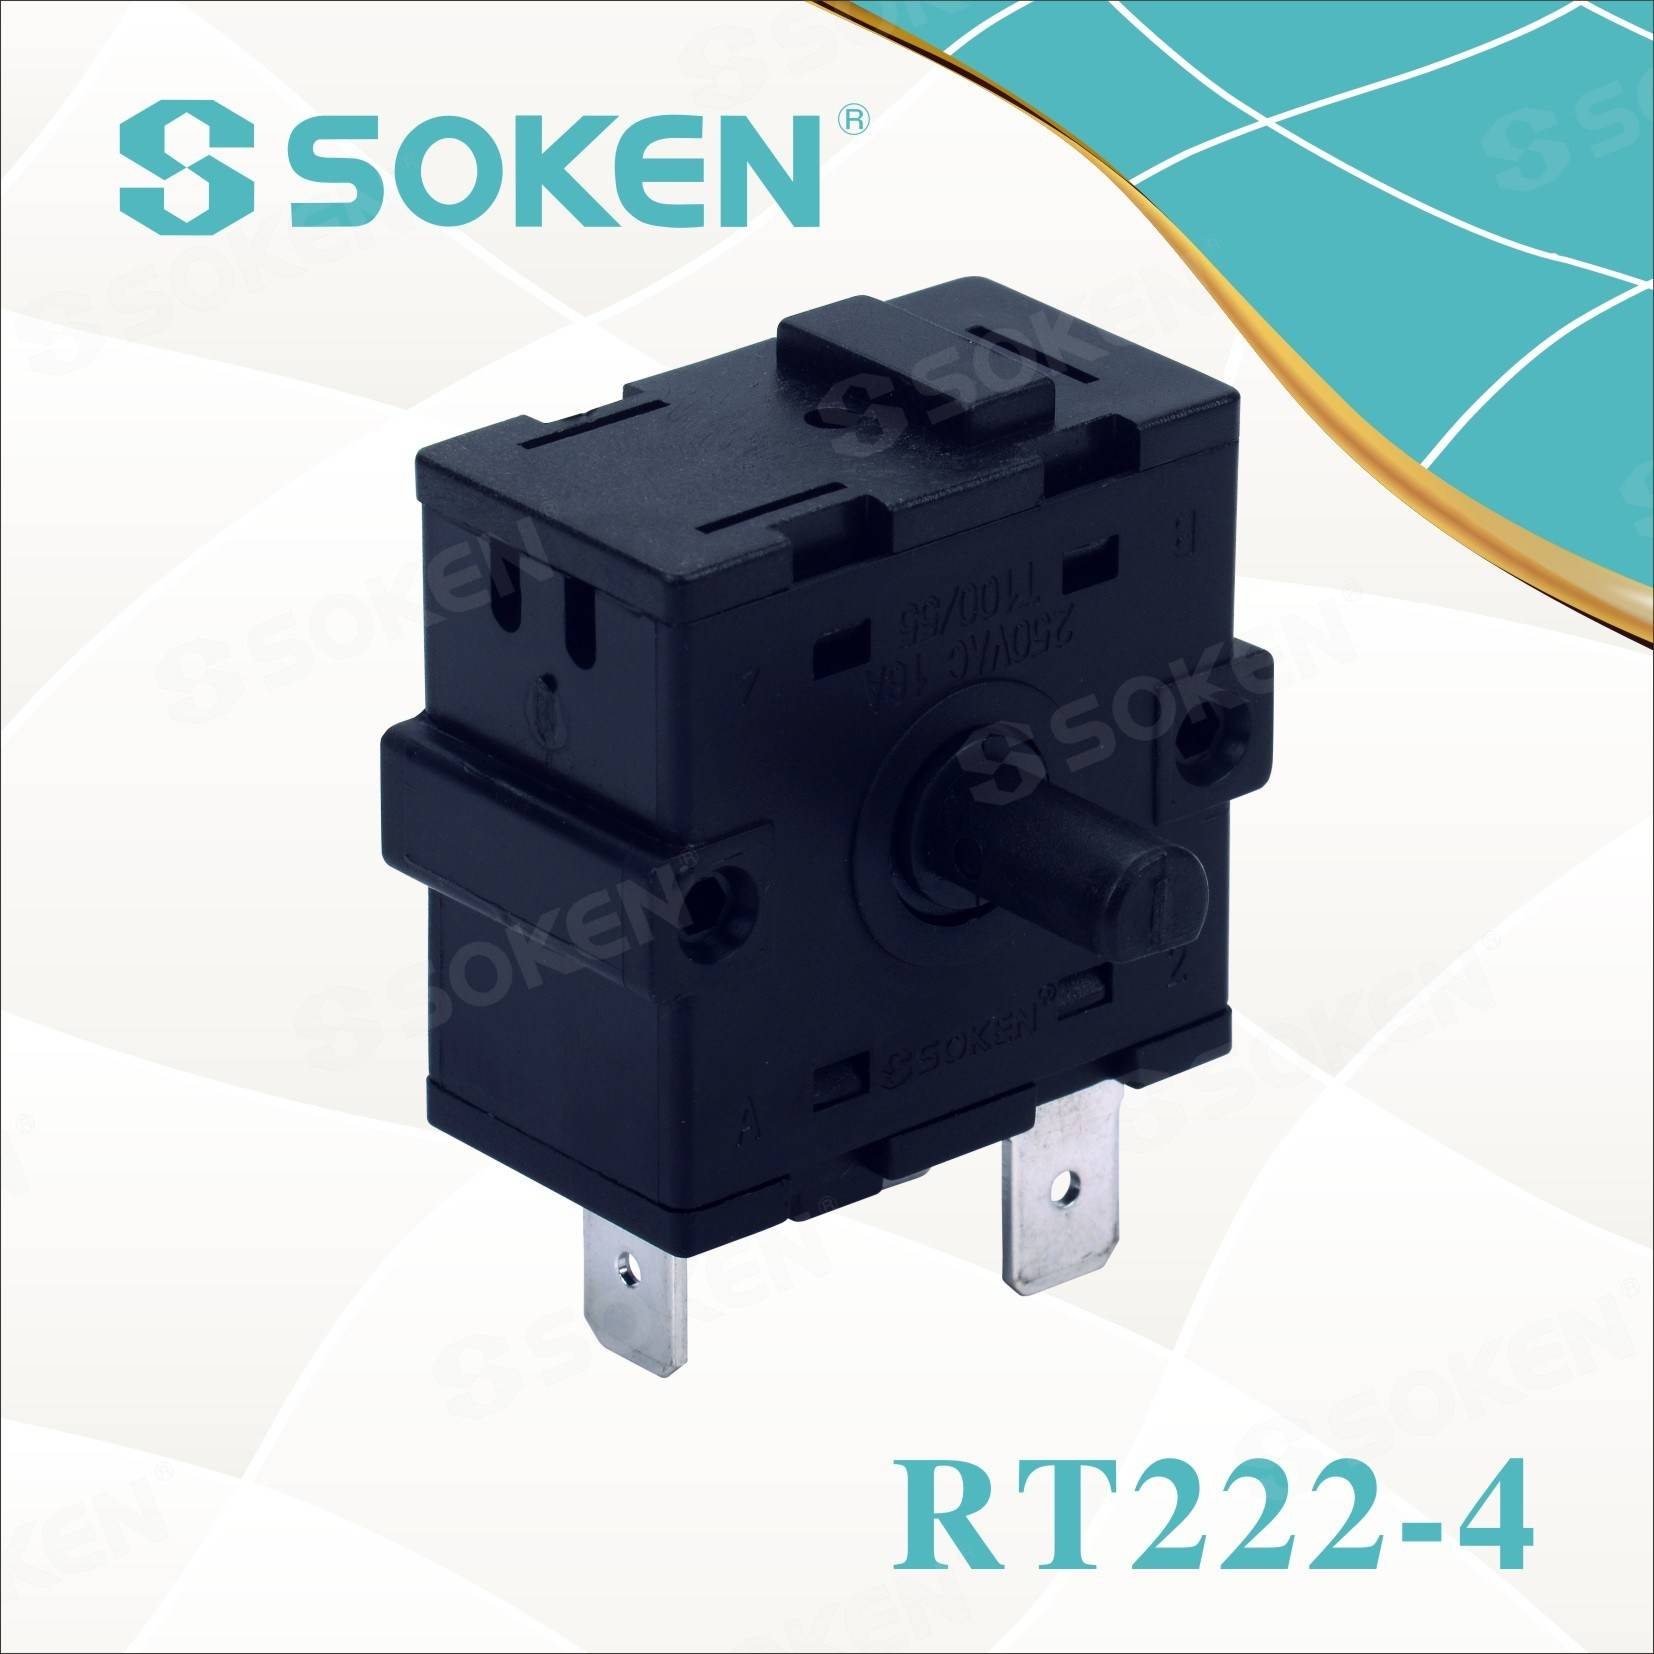 Hot Selling for Marker Lights For Trailers -